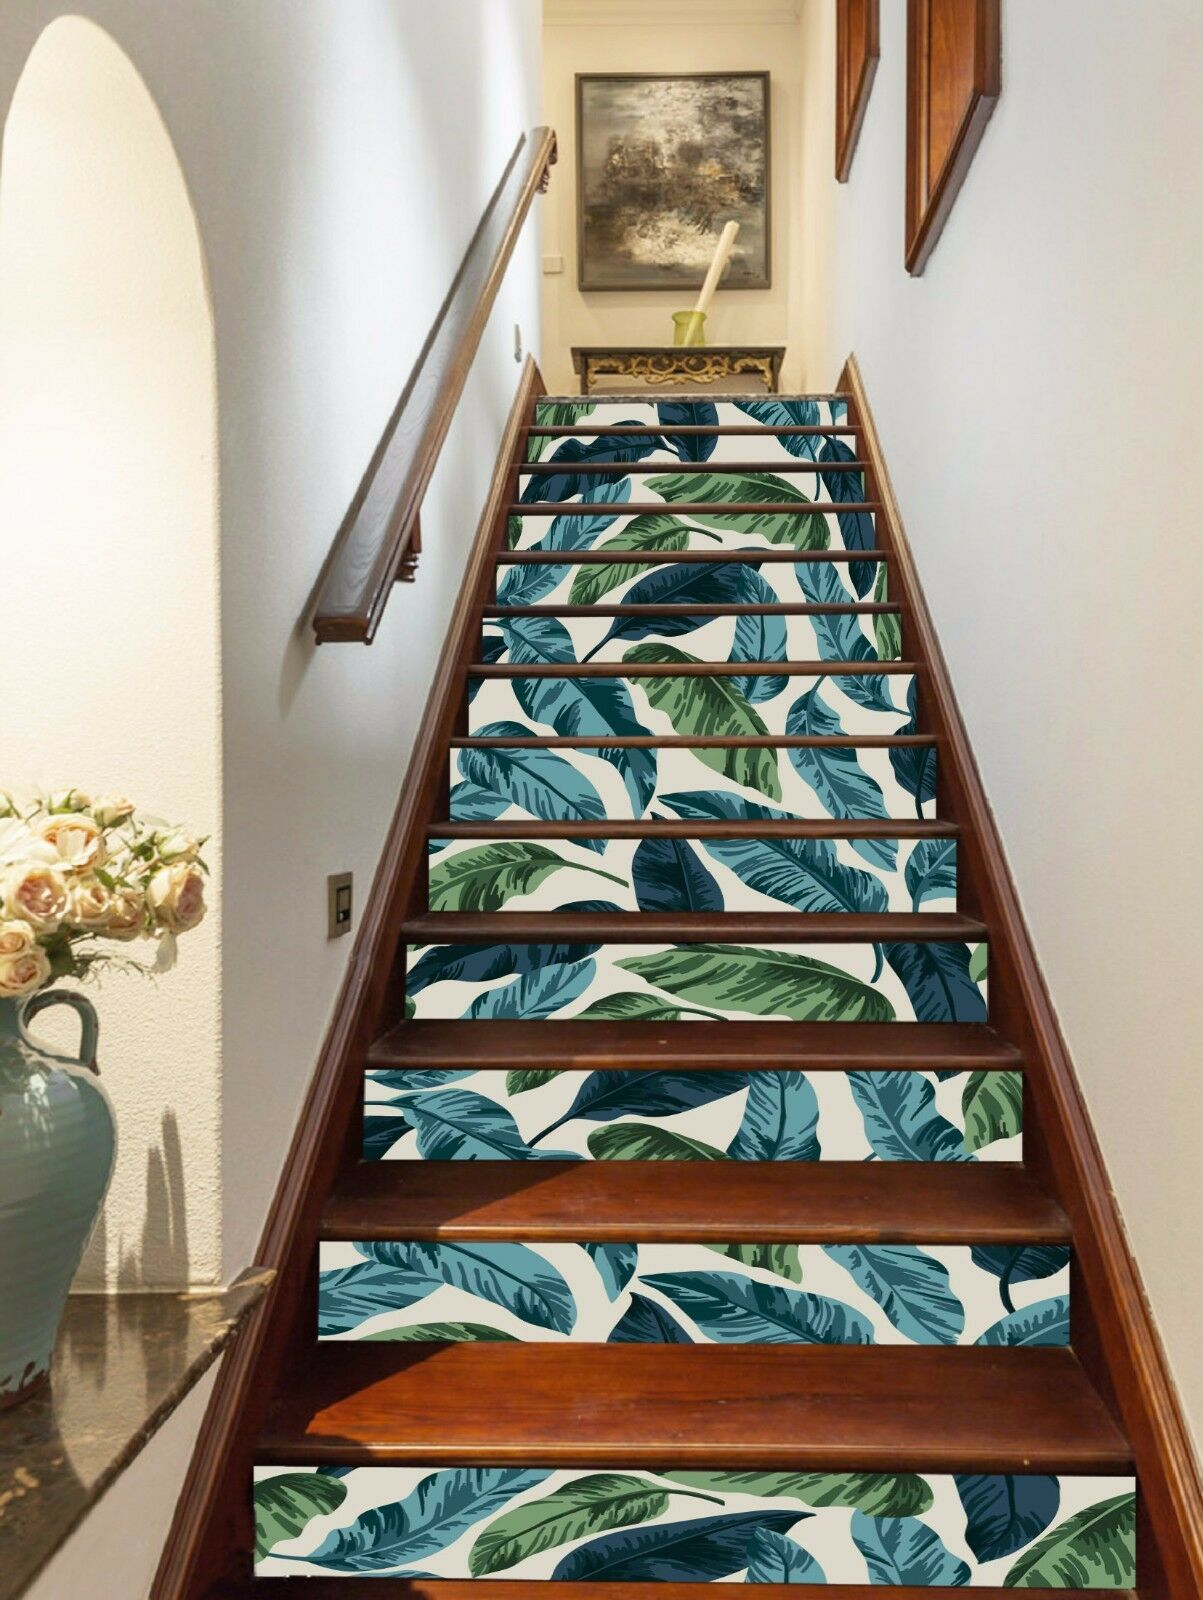 3D Leaves Pattern Stairs Risers Decoration Photo Mural Vinyl Decal Wallpaper US